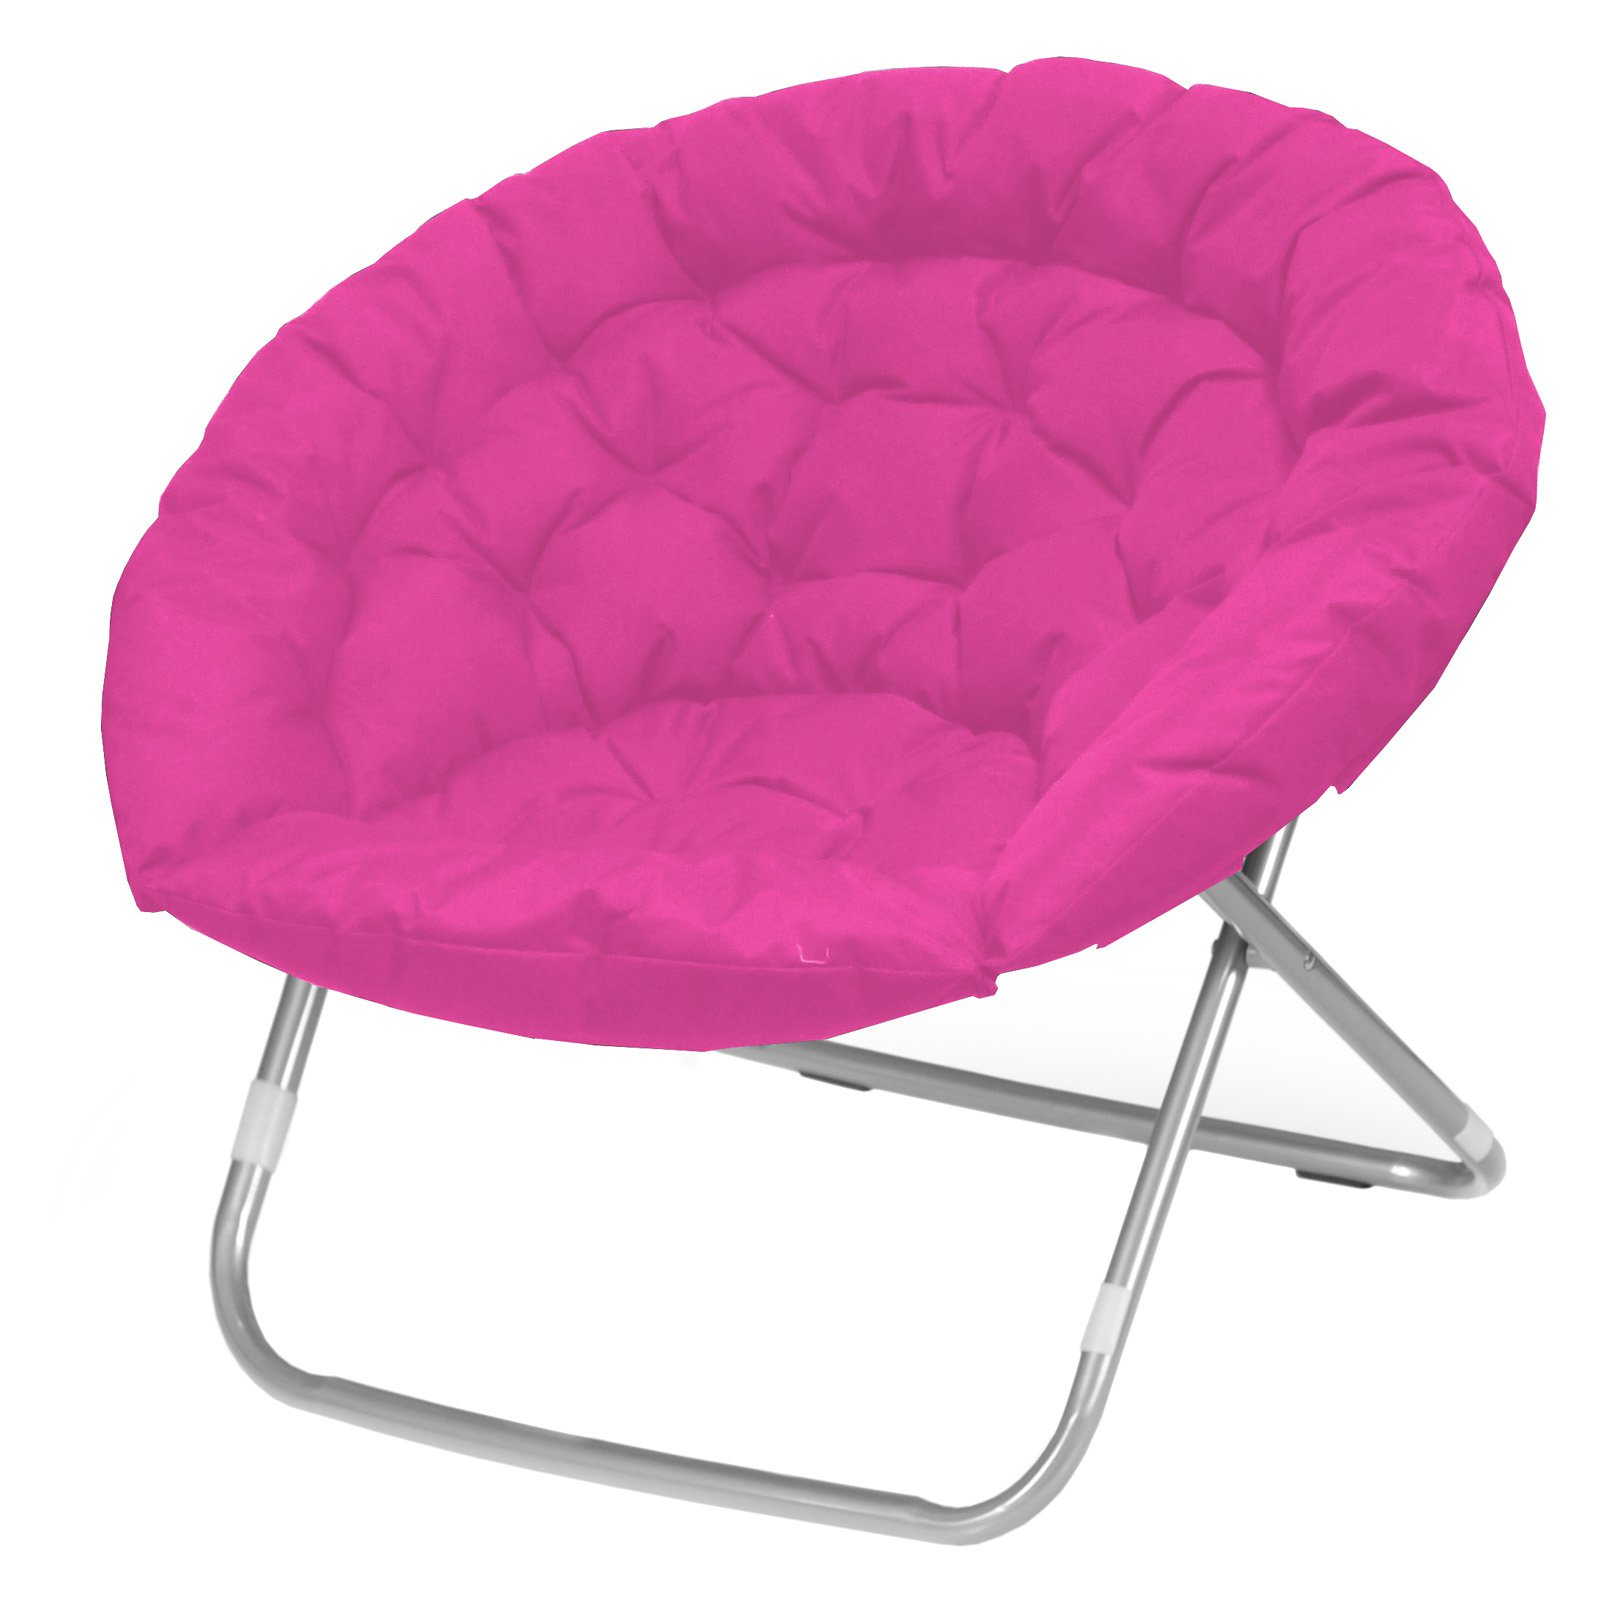 Plush Oversized Moon Chair, Available in Multiple Colors